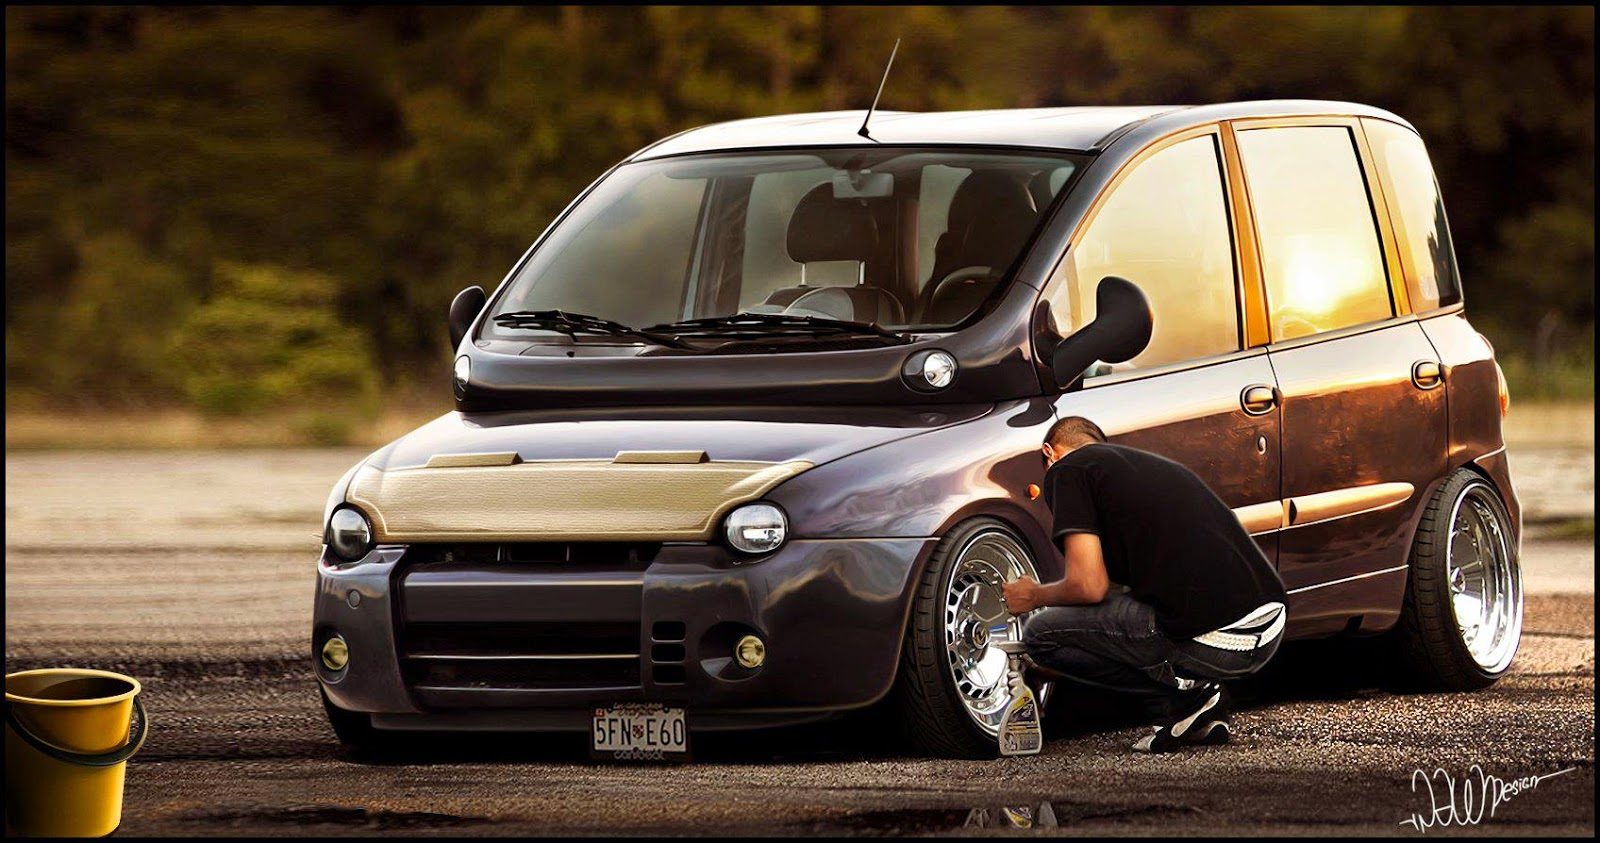 Driving A Stanced Multipla Is Better Than Watching A